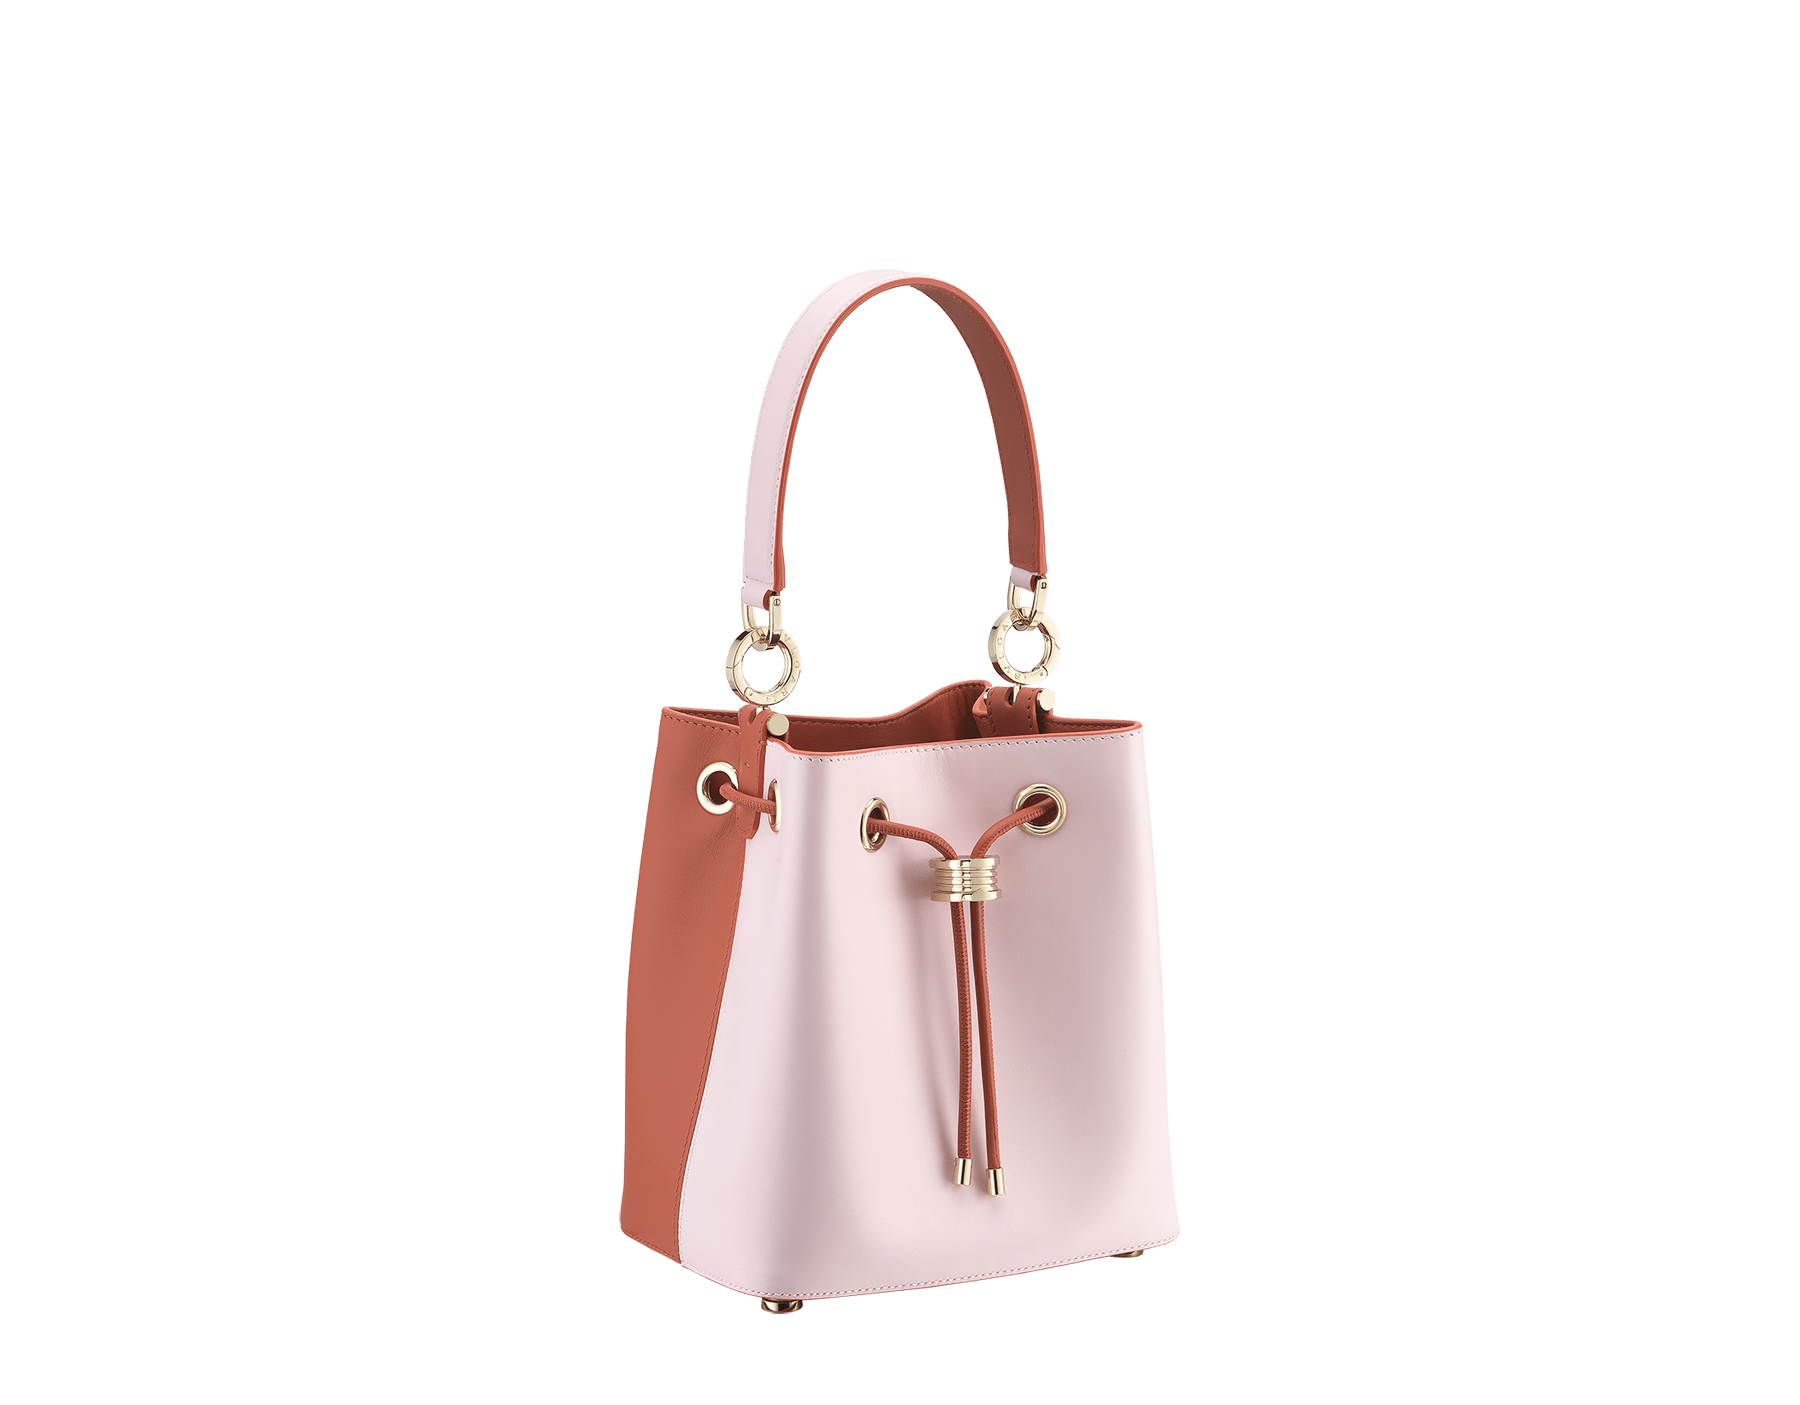 Bucket B.zero1 in rosa di francia and imperial topaz smooth calf leather and imperial topaz nappa inner lining. Hardware in light gold plated brass, featuring B.zero1 décor. 288951 image 2